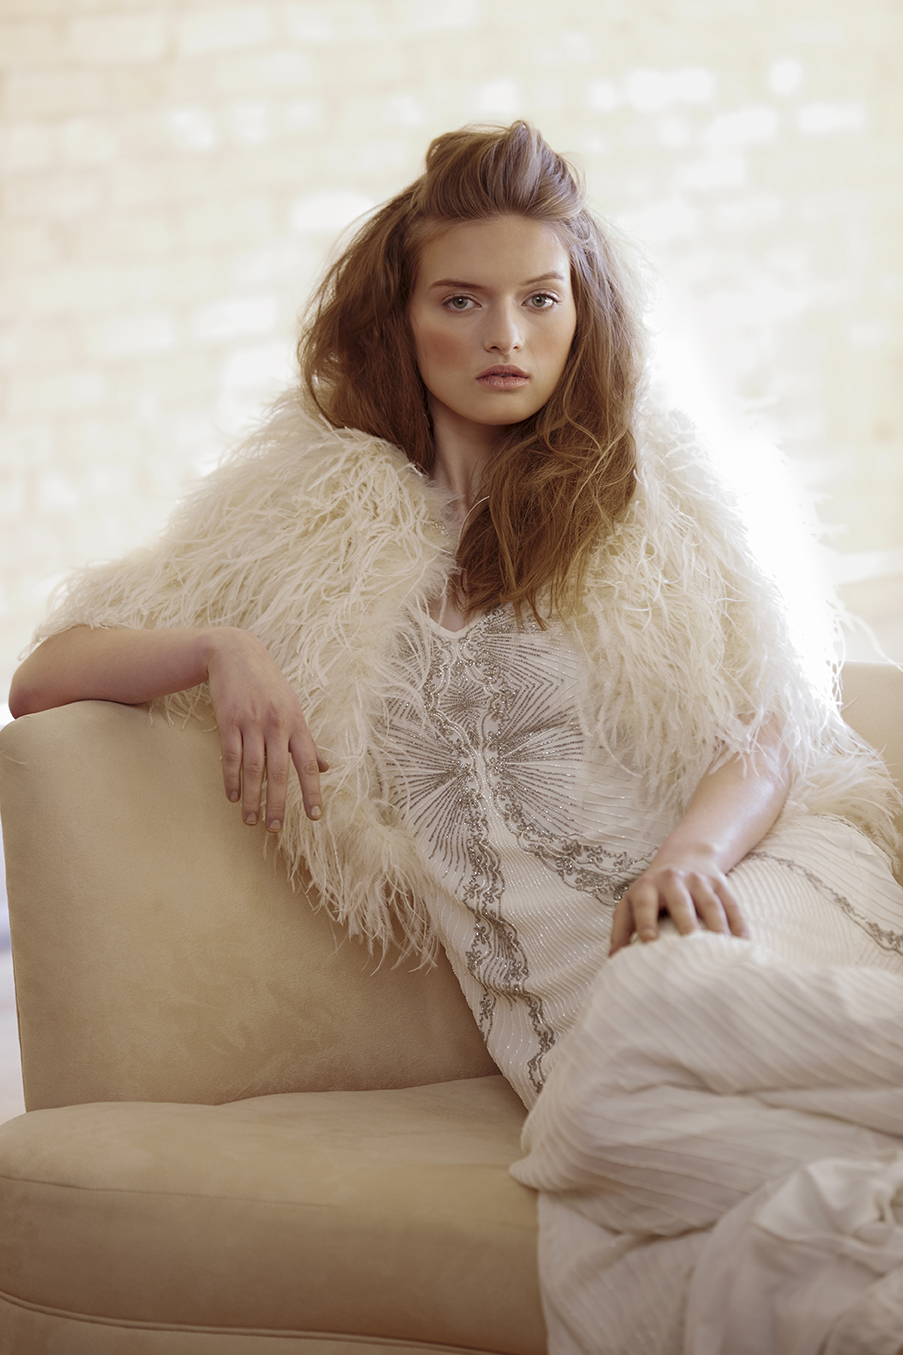 retouched bride resting on sofa in feathered jacket